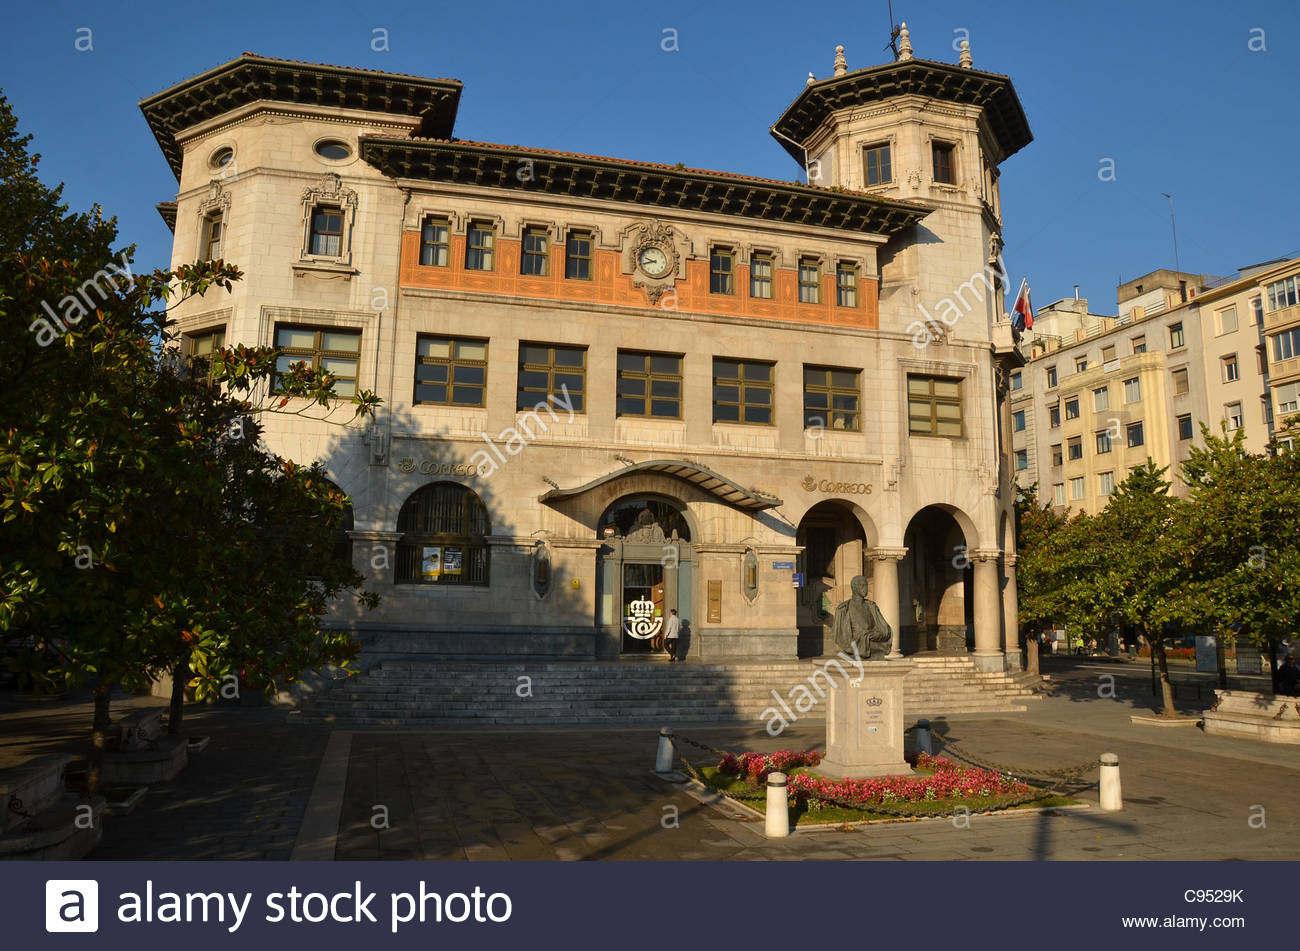 The historic main post office in Santander, Northern Spain. Stock Photo